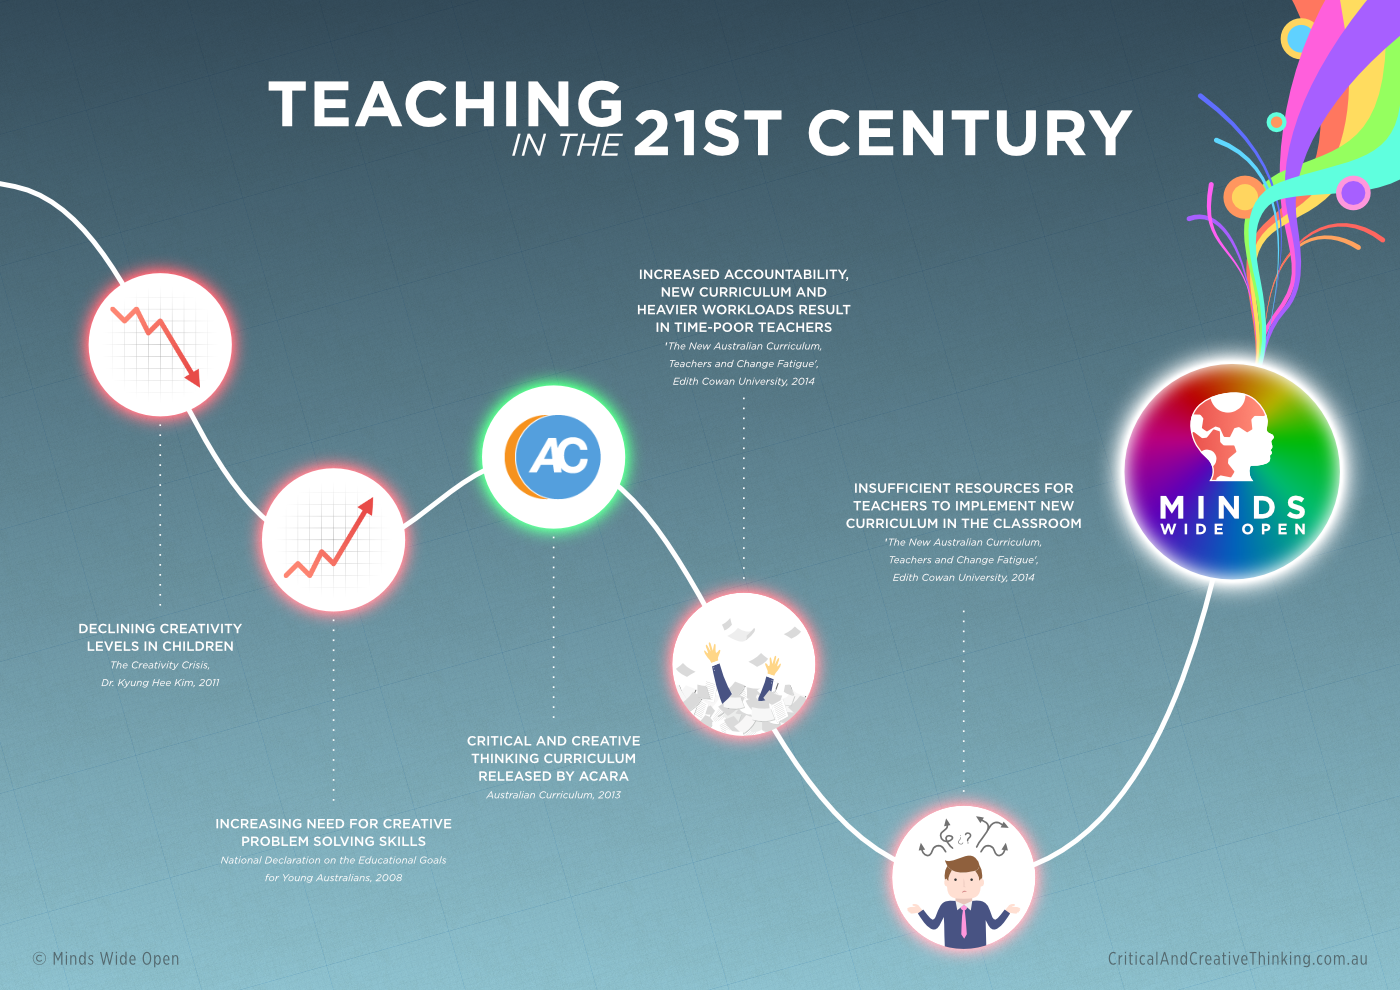 how do i implement creative thinking into the classroom